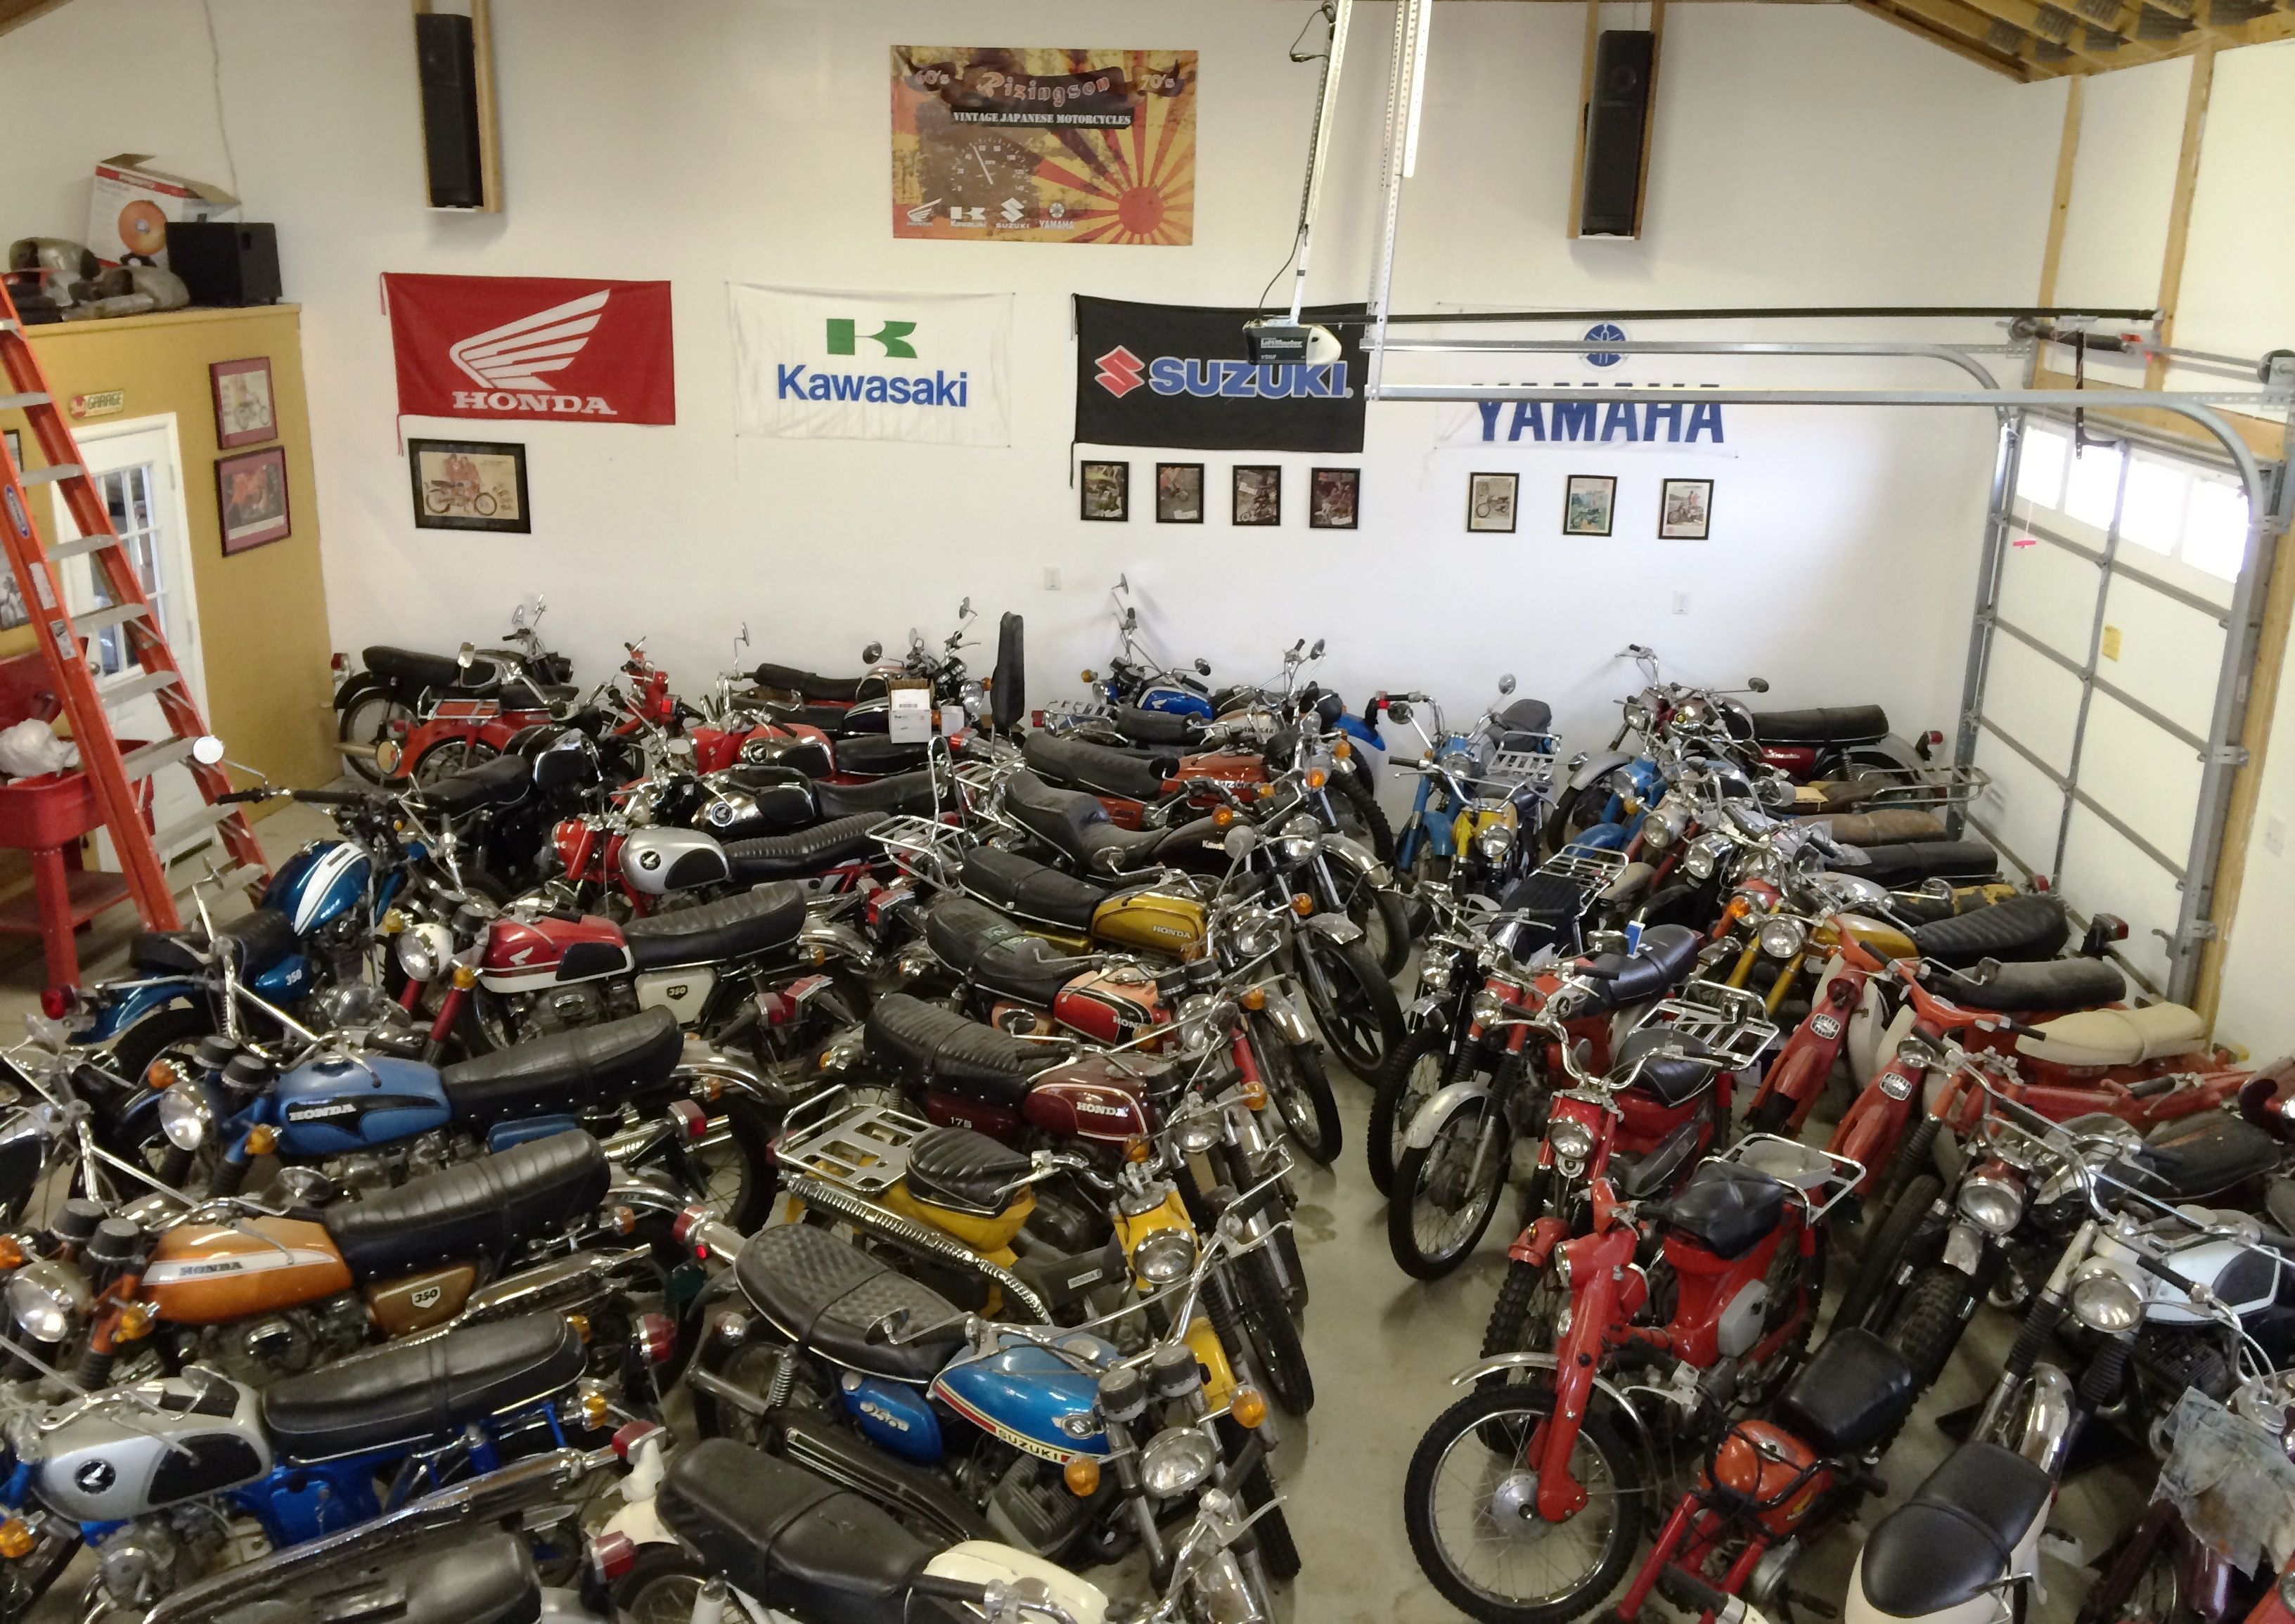 Motorcycle Dream Garage 60's and 70's Japanese Motorcycles collection  (Rizingson Vintage Motorcycle shop)